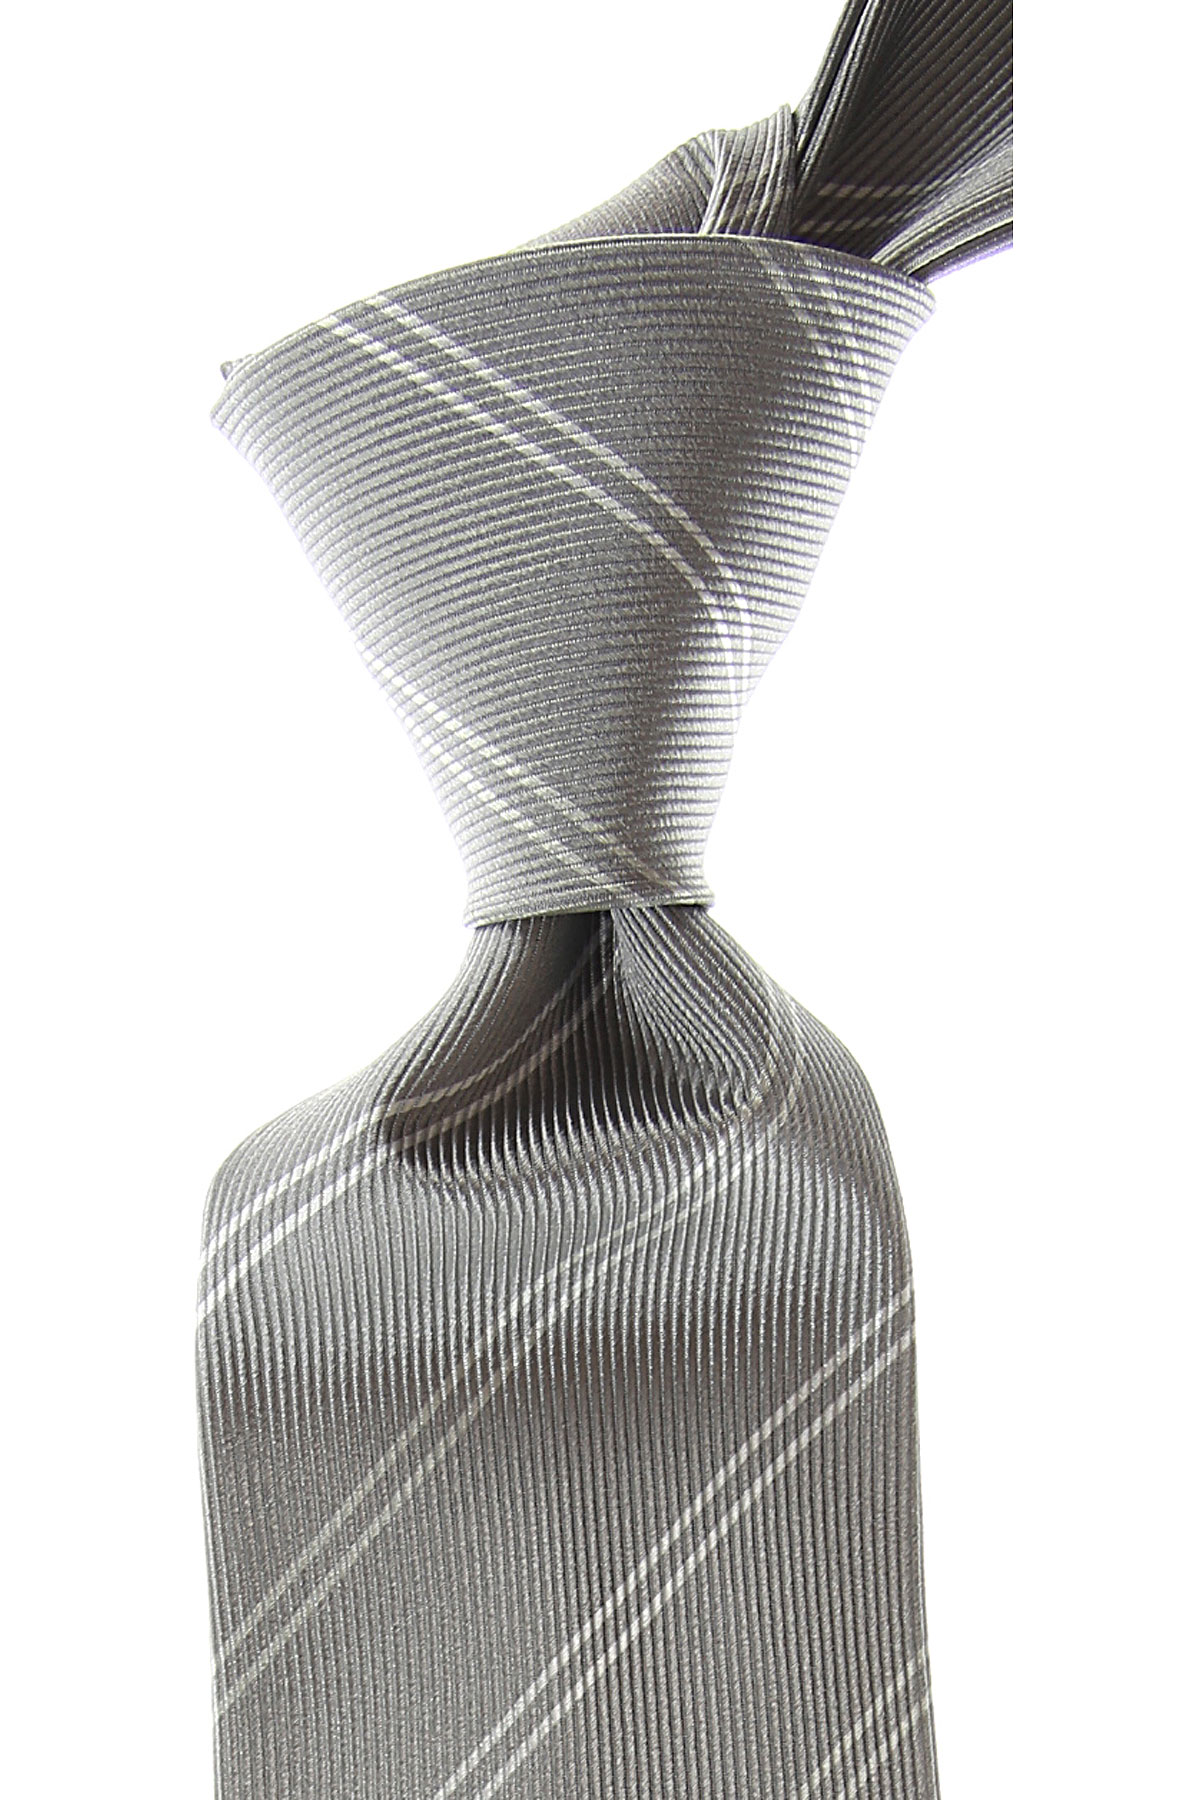 Giorgio_Armani_Ties_On_Sale_Light_Silver_Grey_Silk_2019